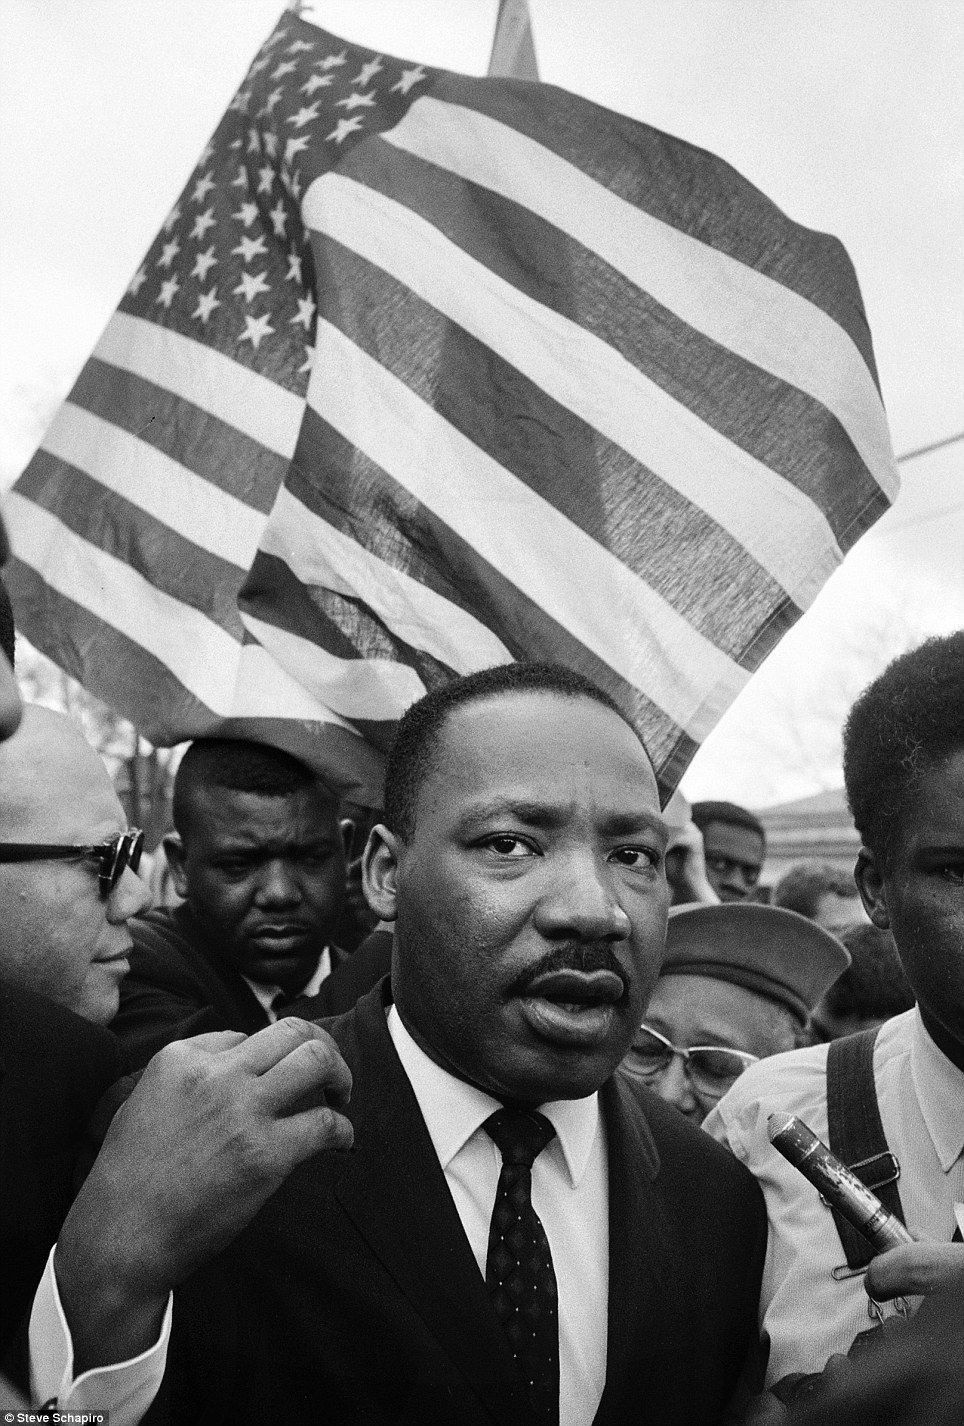 Injustice Anywhere Is A Threat To Justice Everywhere Martin Luther King Martin Luther King Jr History Icon